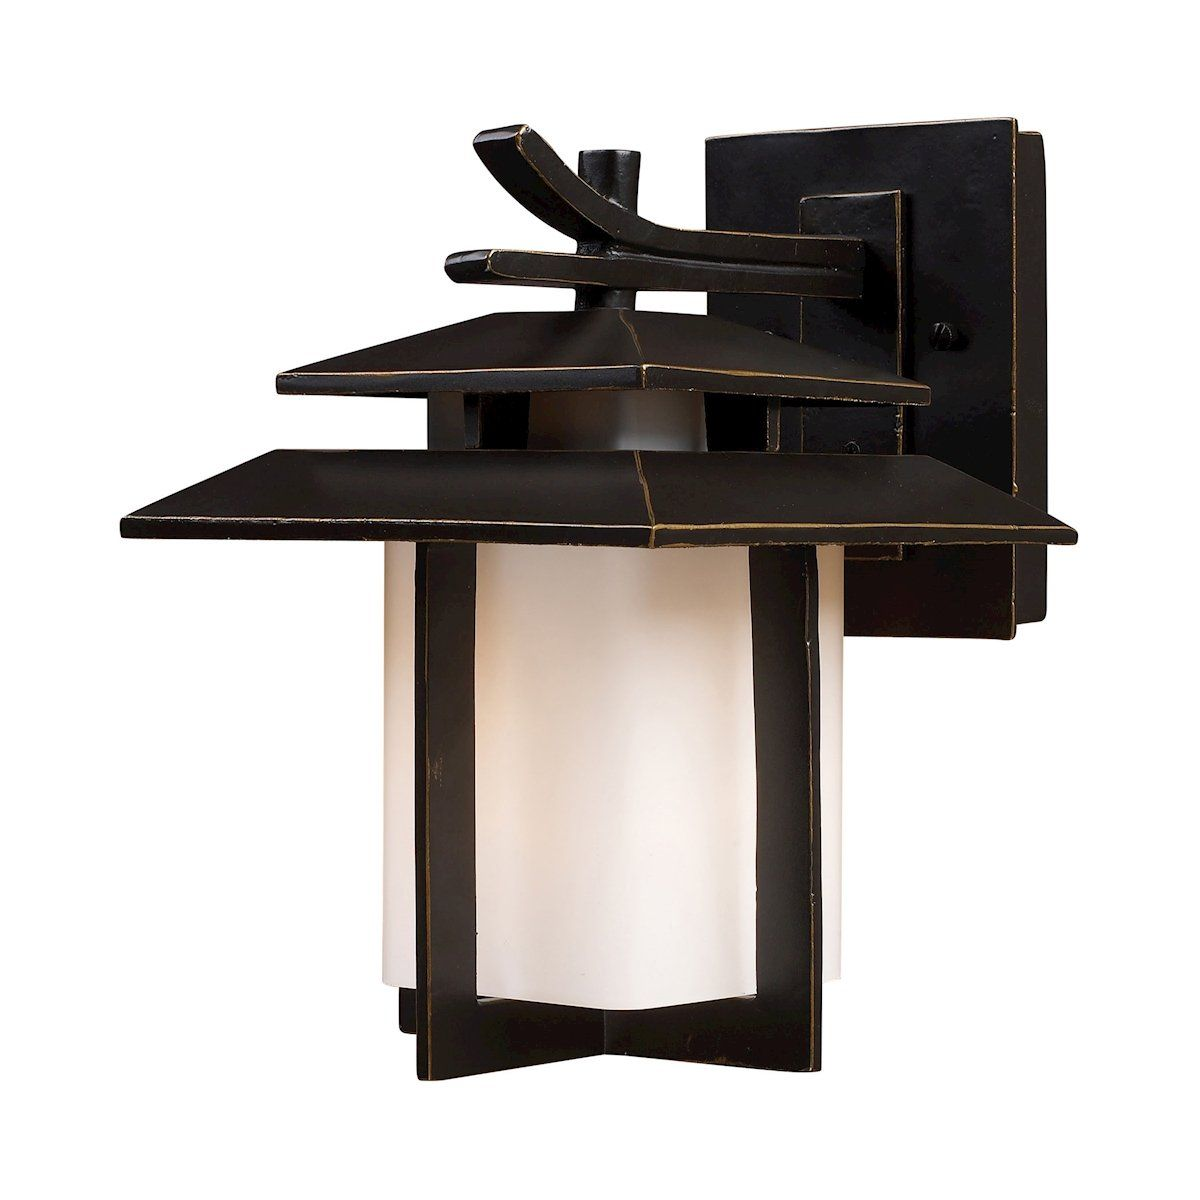 Kanso light outdoor sconce in hazlenut bronze products